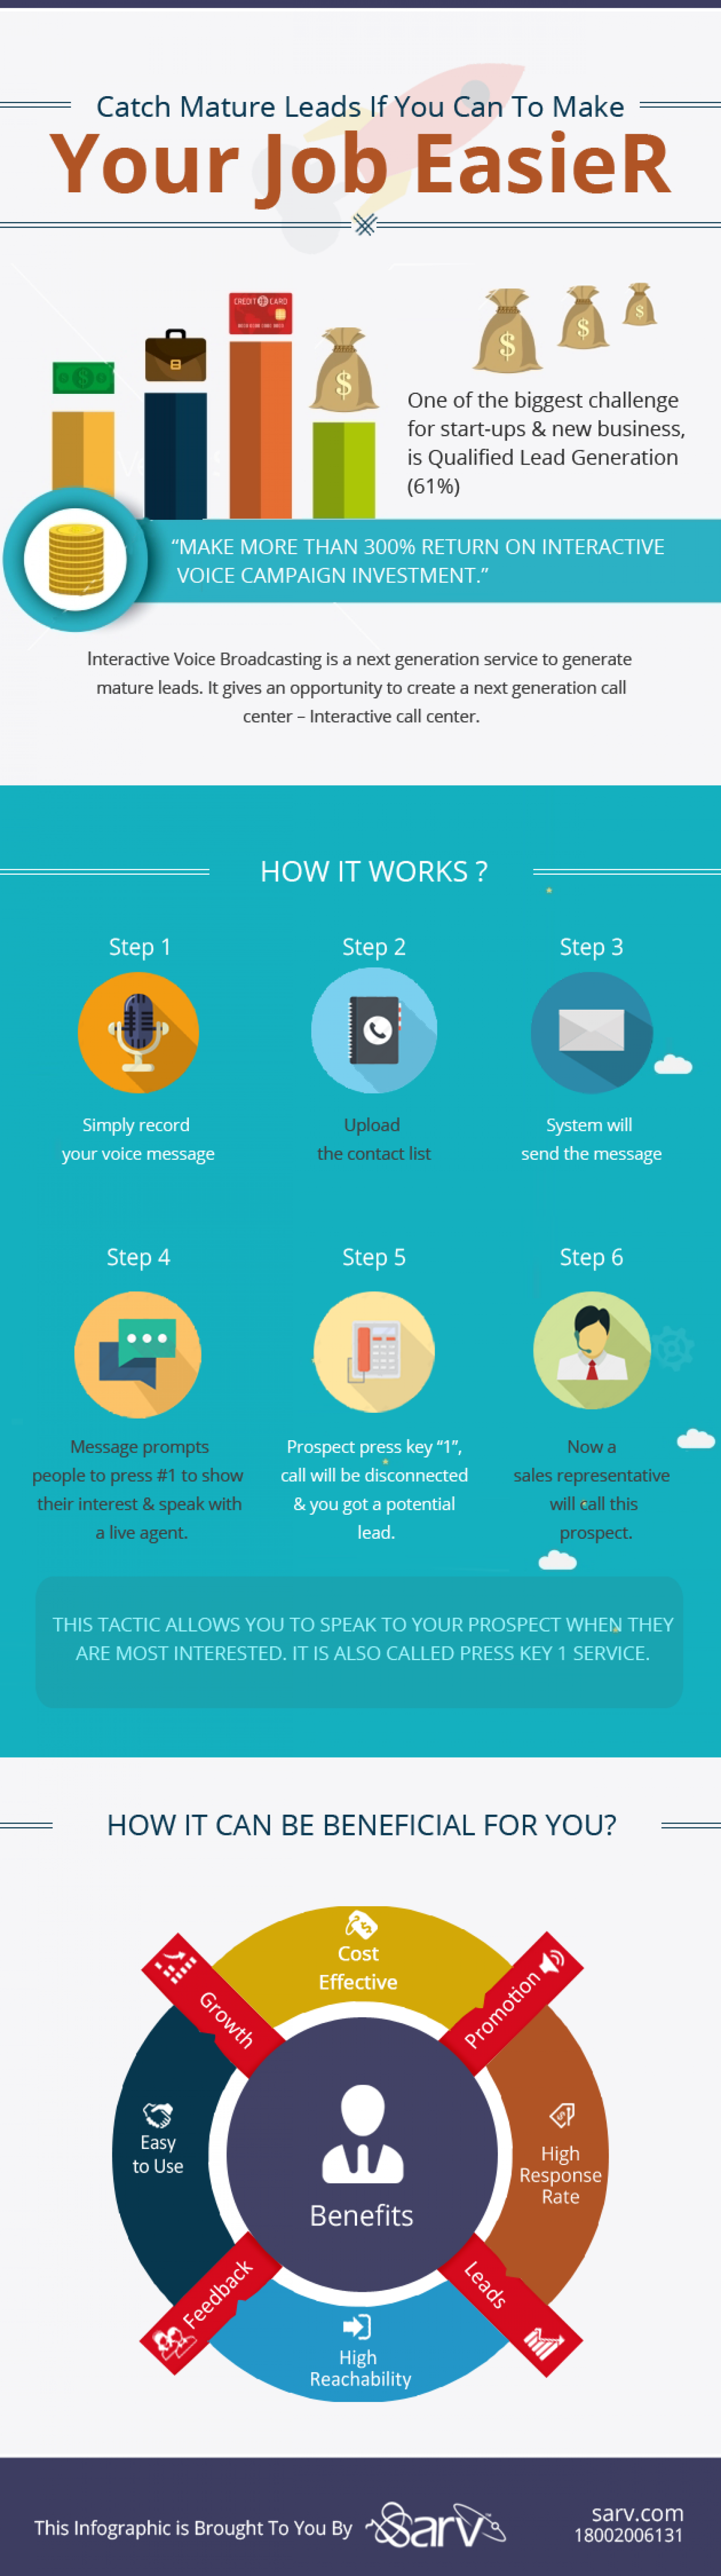 Catch Mature Leads If You Can To Make Job Easier Infographic